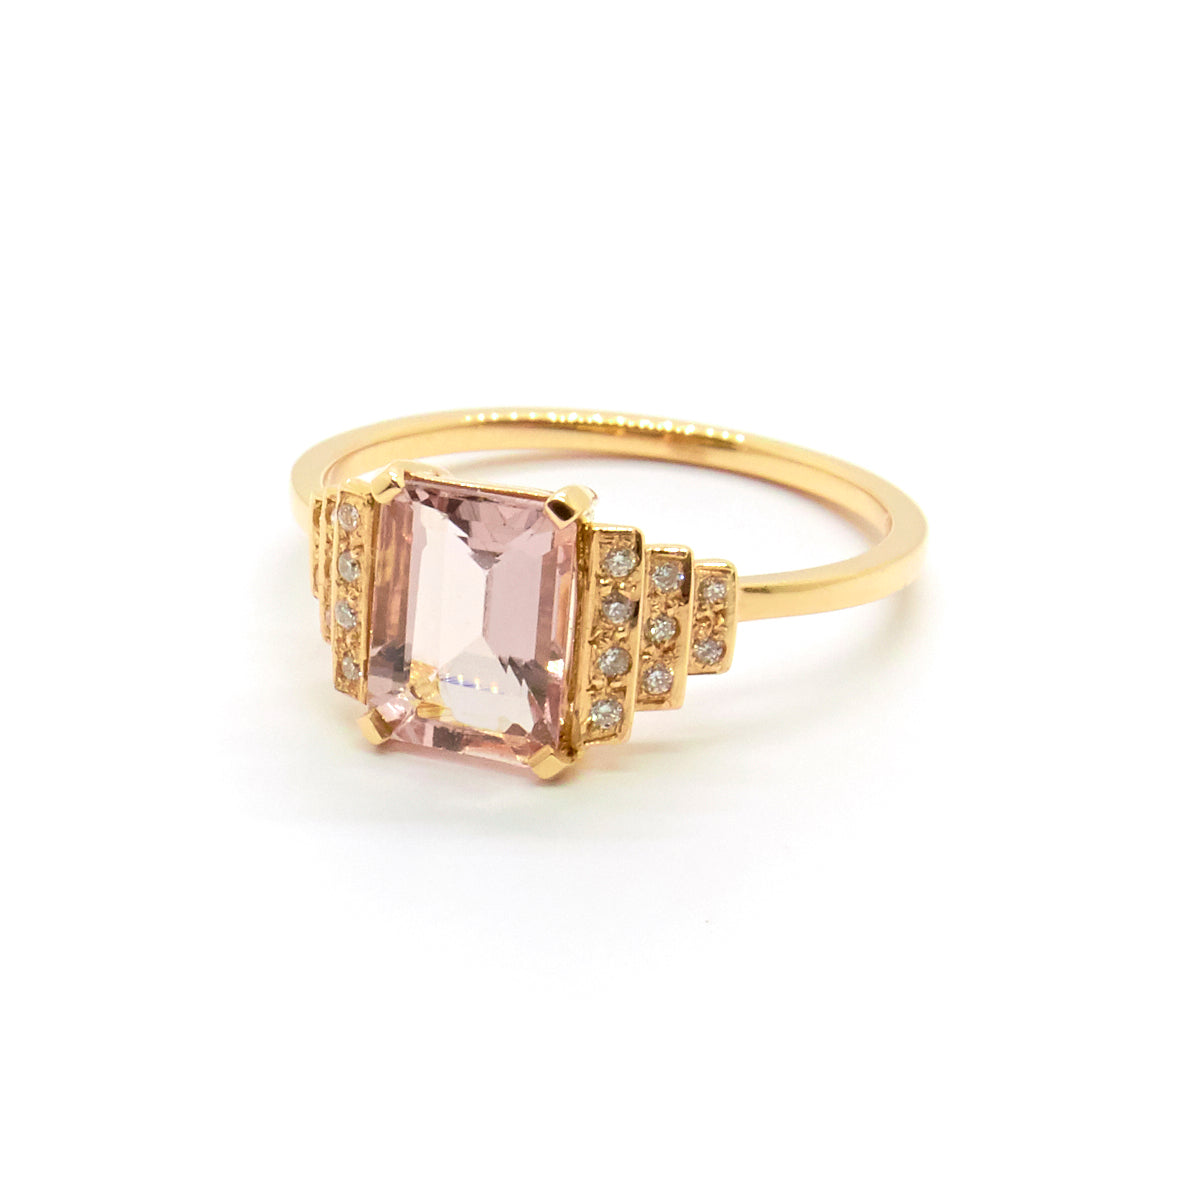 Maya Ring with Morganite and White Diamonds